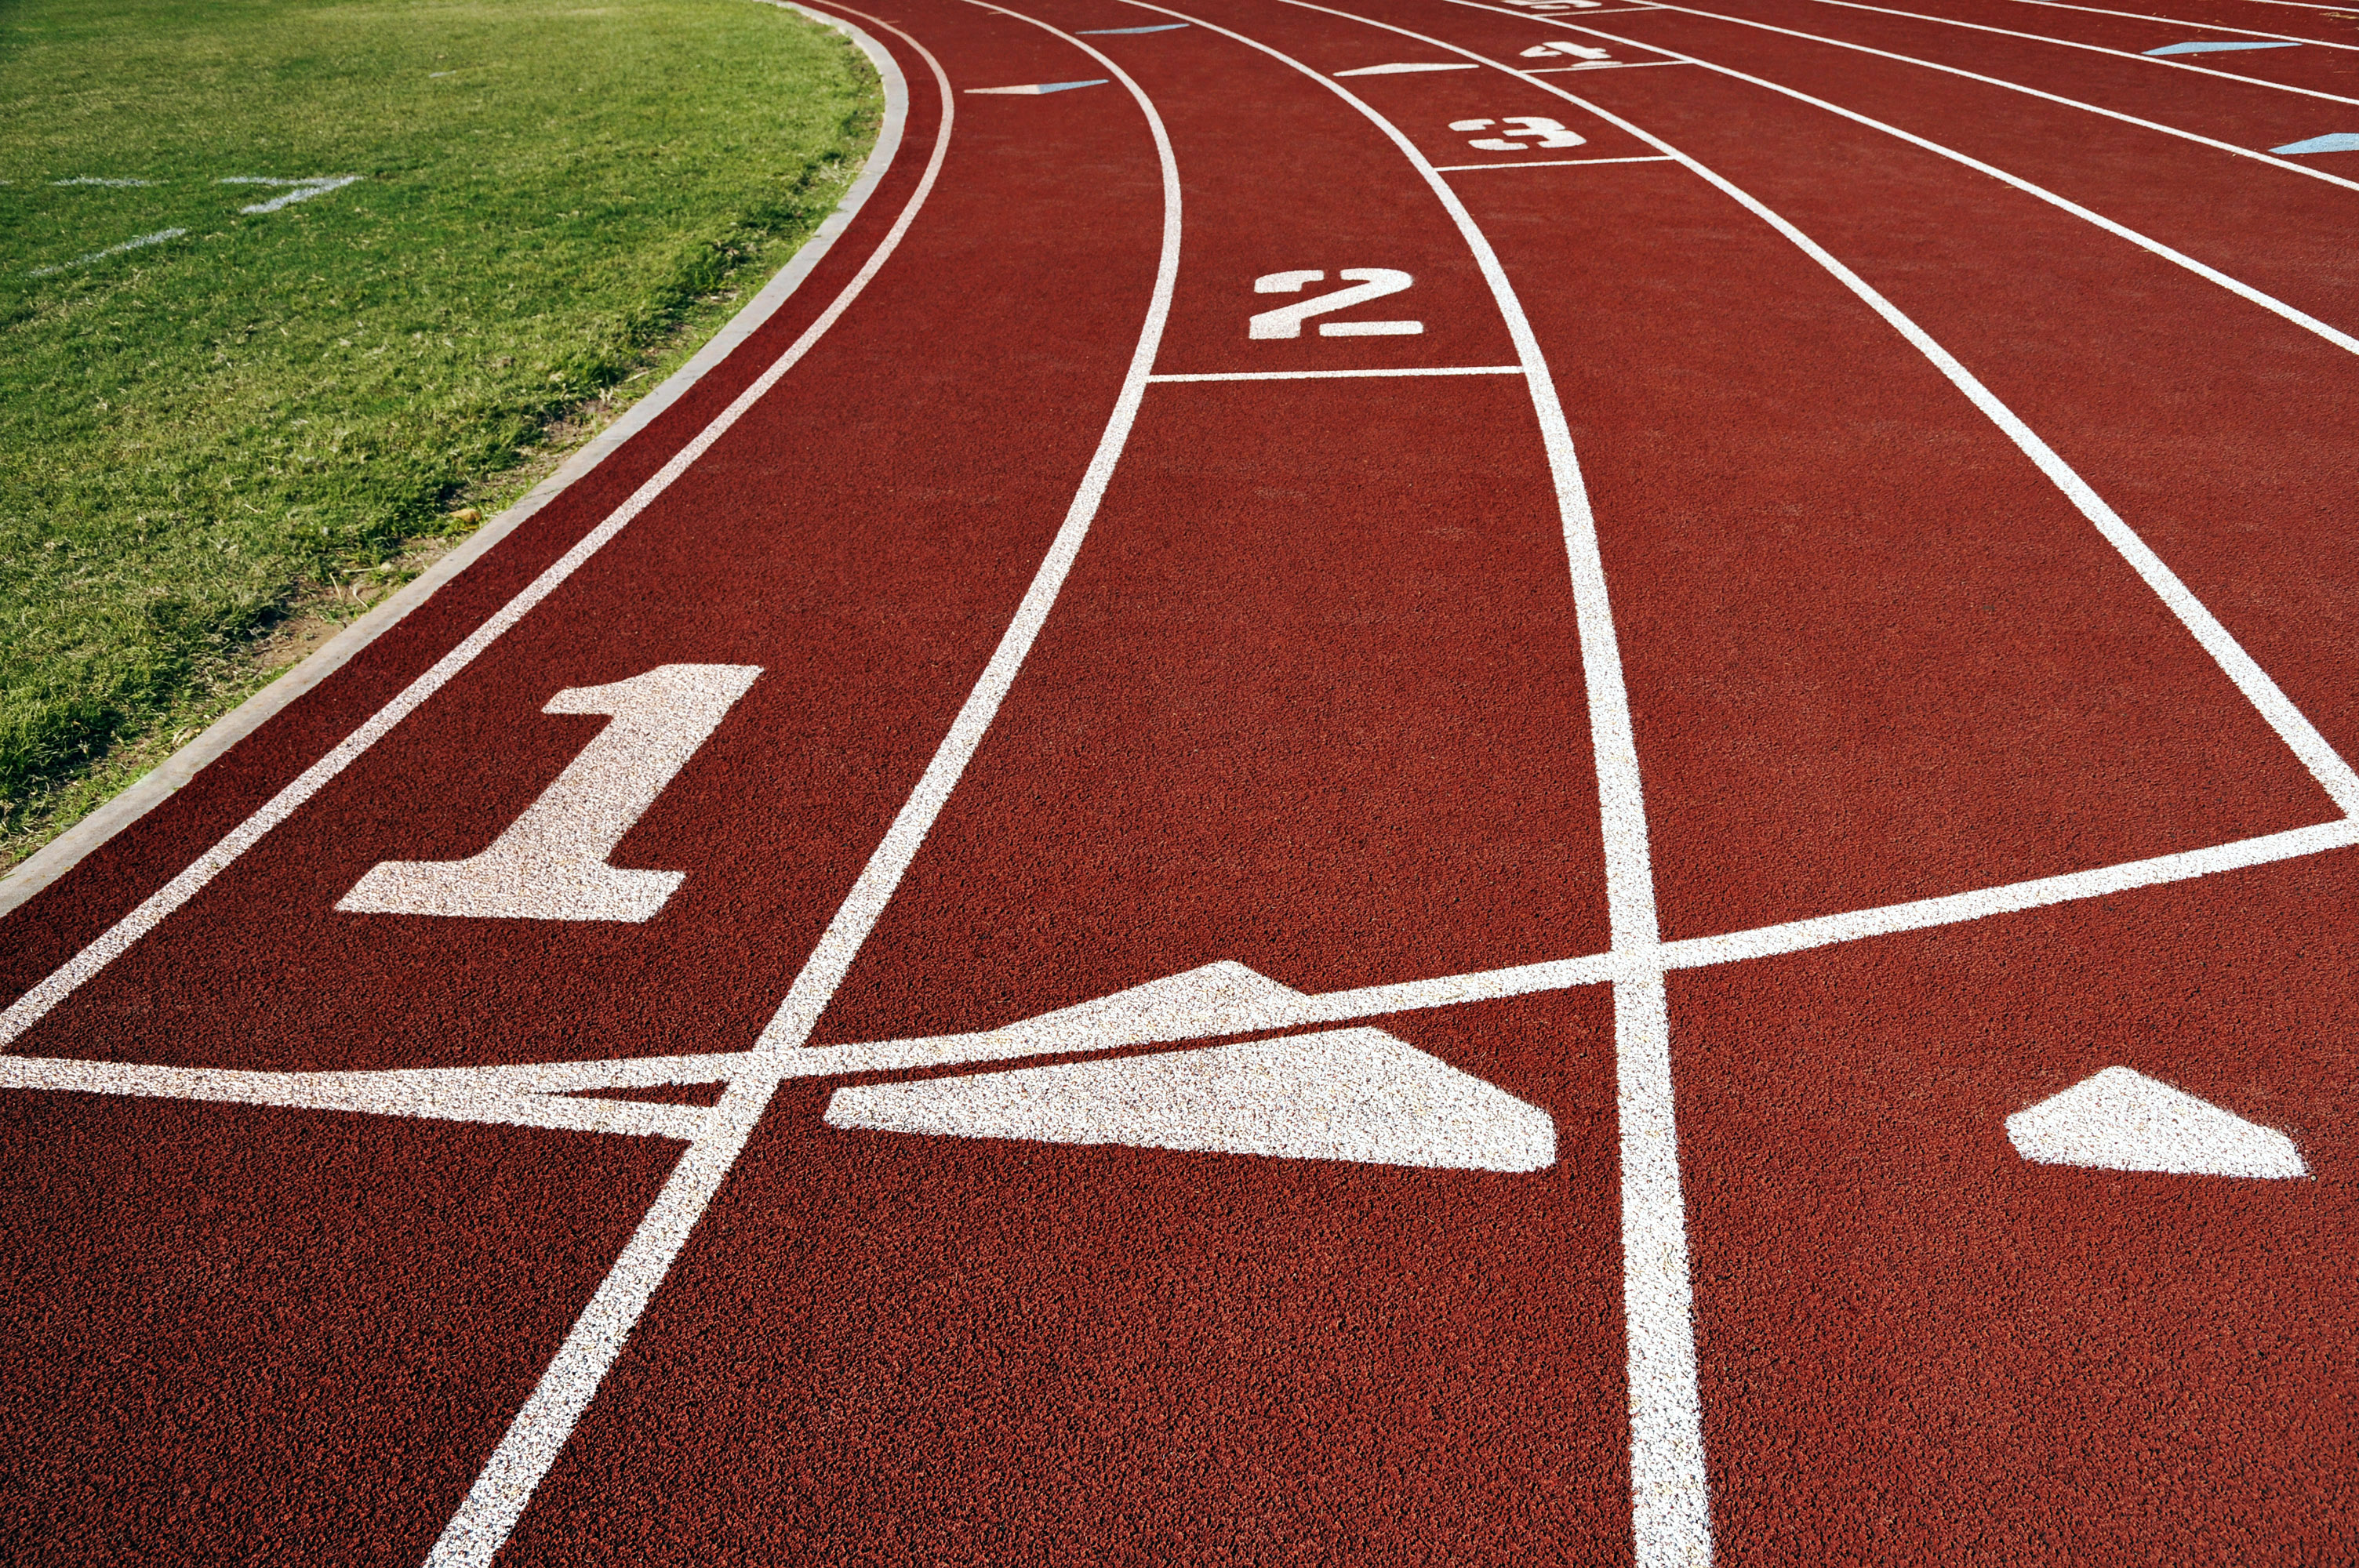 Interval Training on the Track for Fitness and Fat Loss